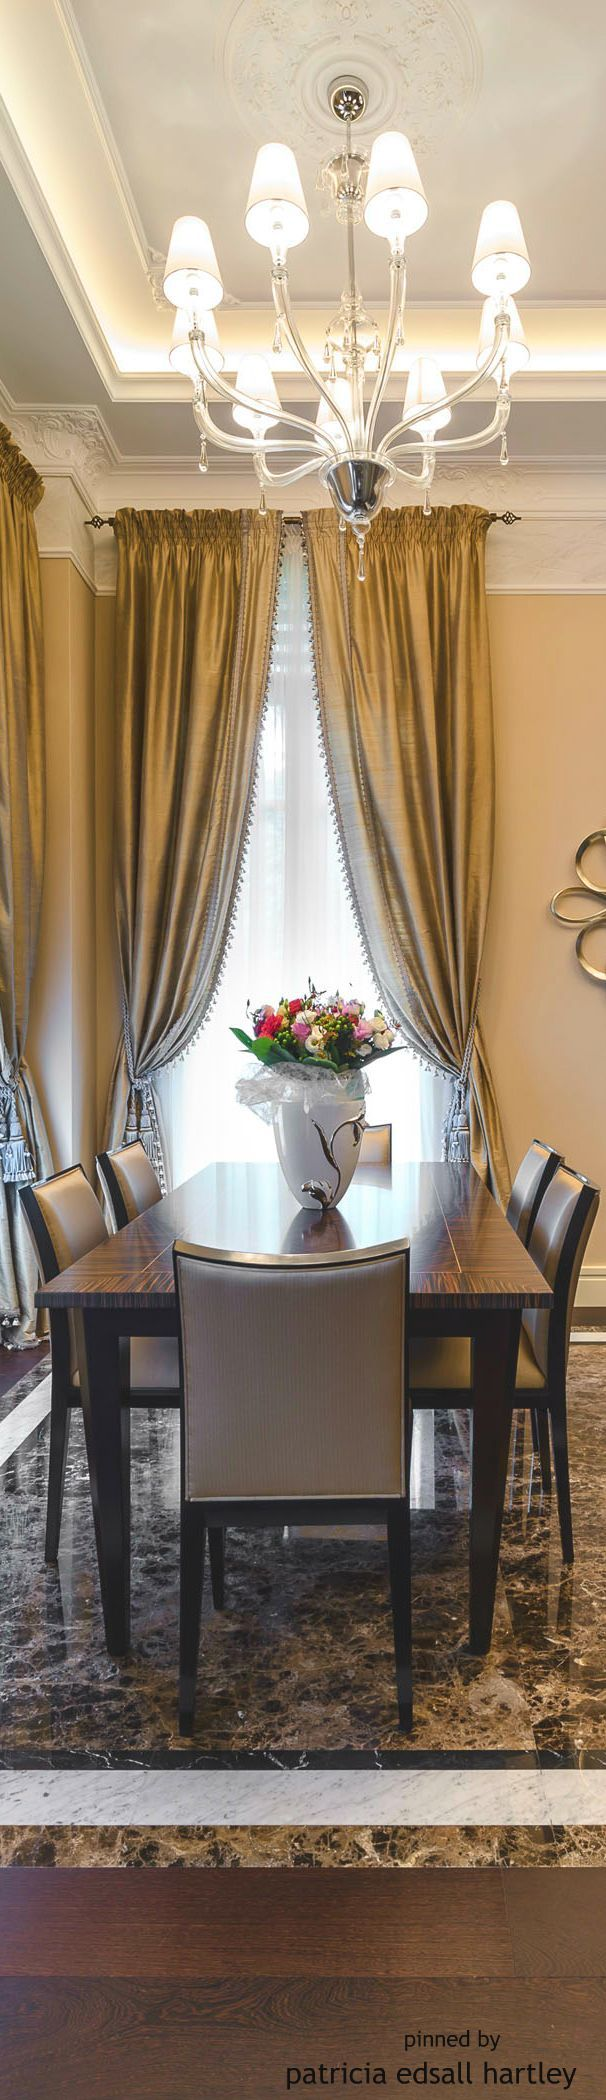 Bay Windows Soft Furnishings Blinds Drapery Shutters Window Treatments  Interior Decorating Mansions Dining Rooms